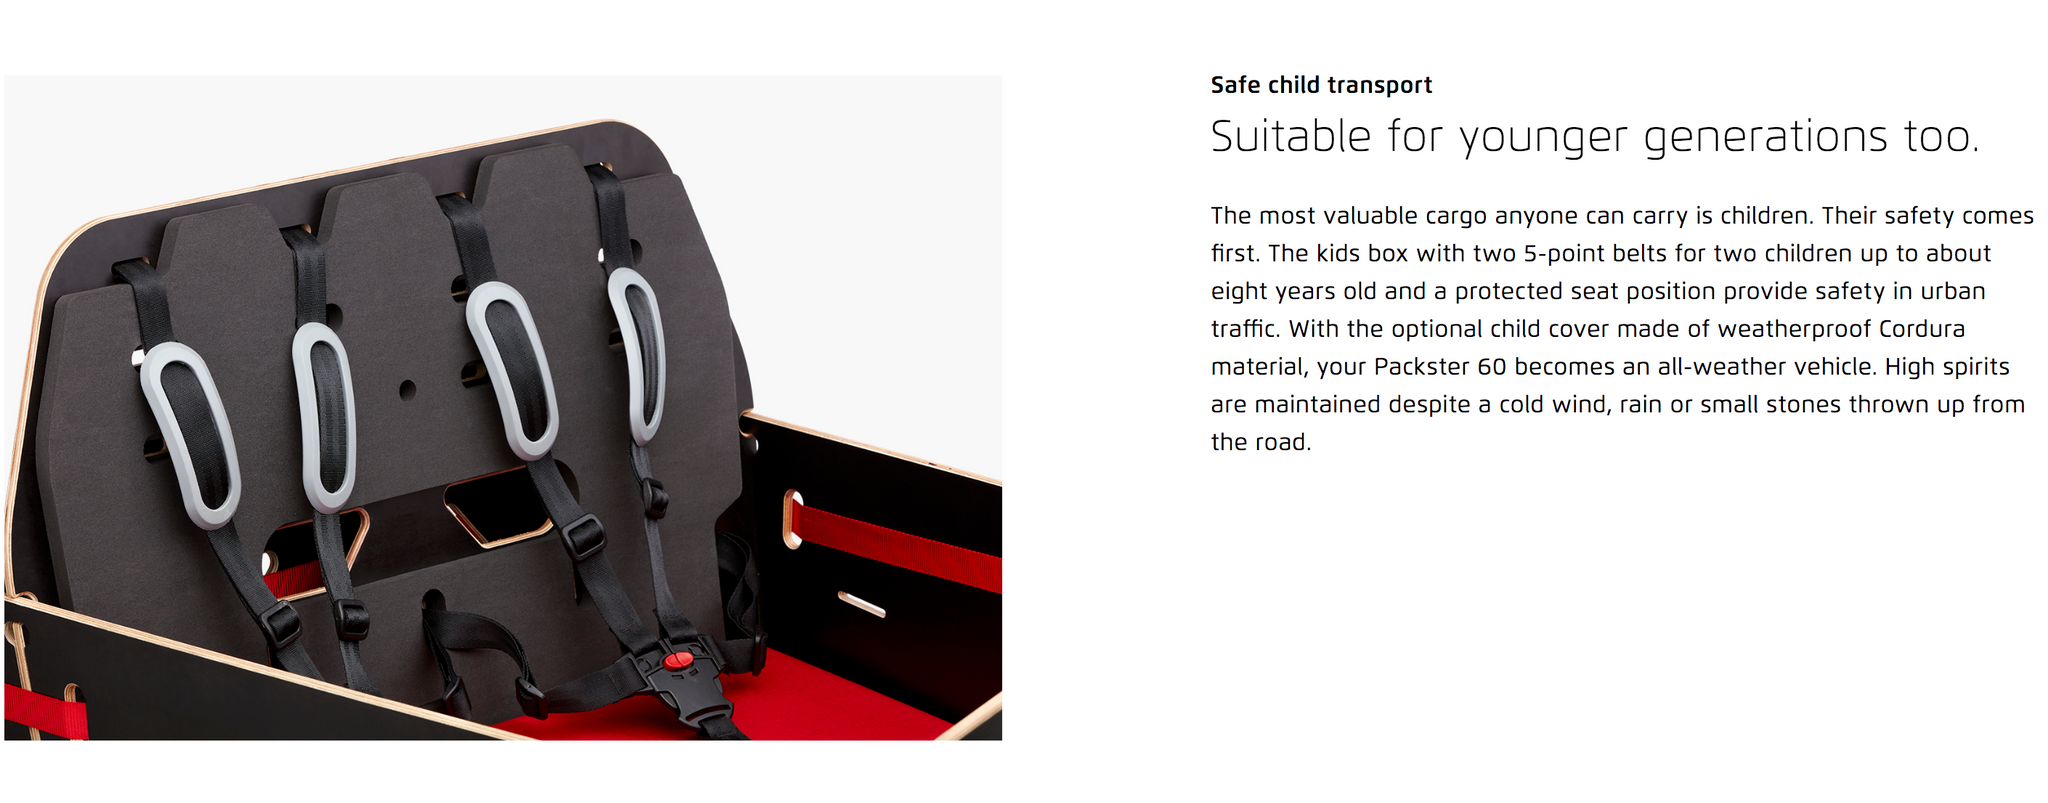 Safe child transport  Suitable for younger generations too. The most valuable cargo anyone can carry is children. Their safety comes first. The kids box with two 5-point belts for two children up to about eight years old and a protected seat position provide safety in urban traffic. With the optional child cover made of weatherproof Cordura material, your Packster 60 becomes an all-weather vehicle. High spirits are maintained despite a cold wind, rain or small stones thrown up from the road.